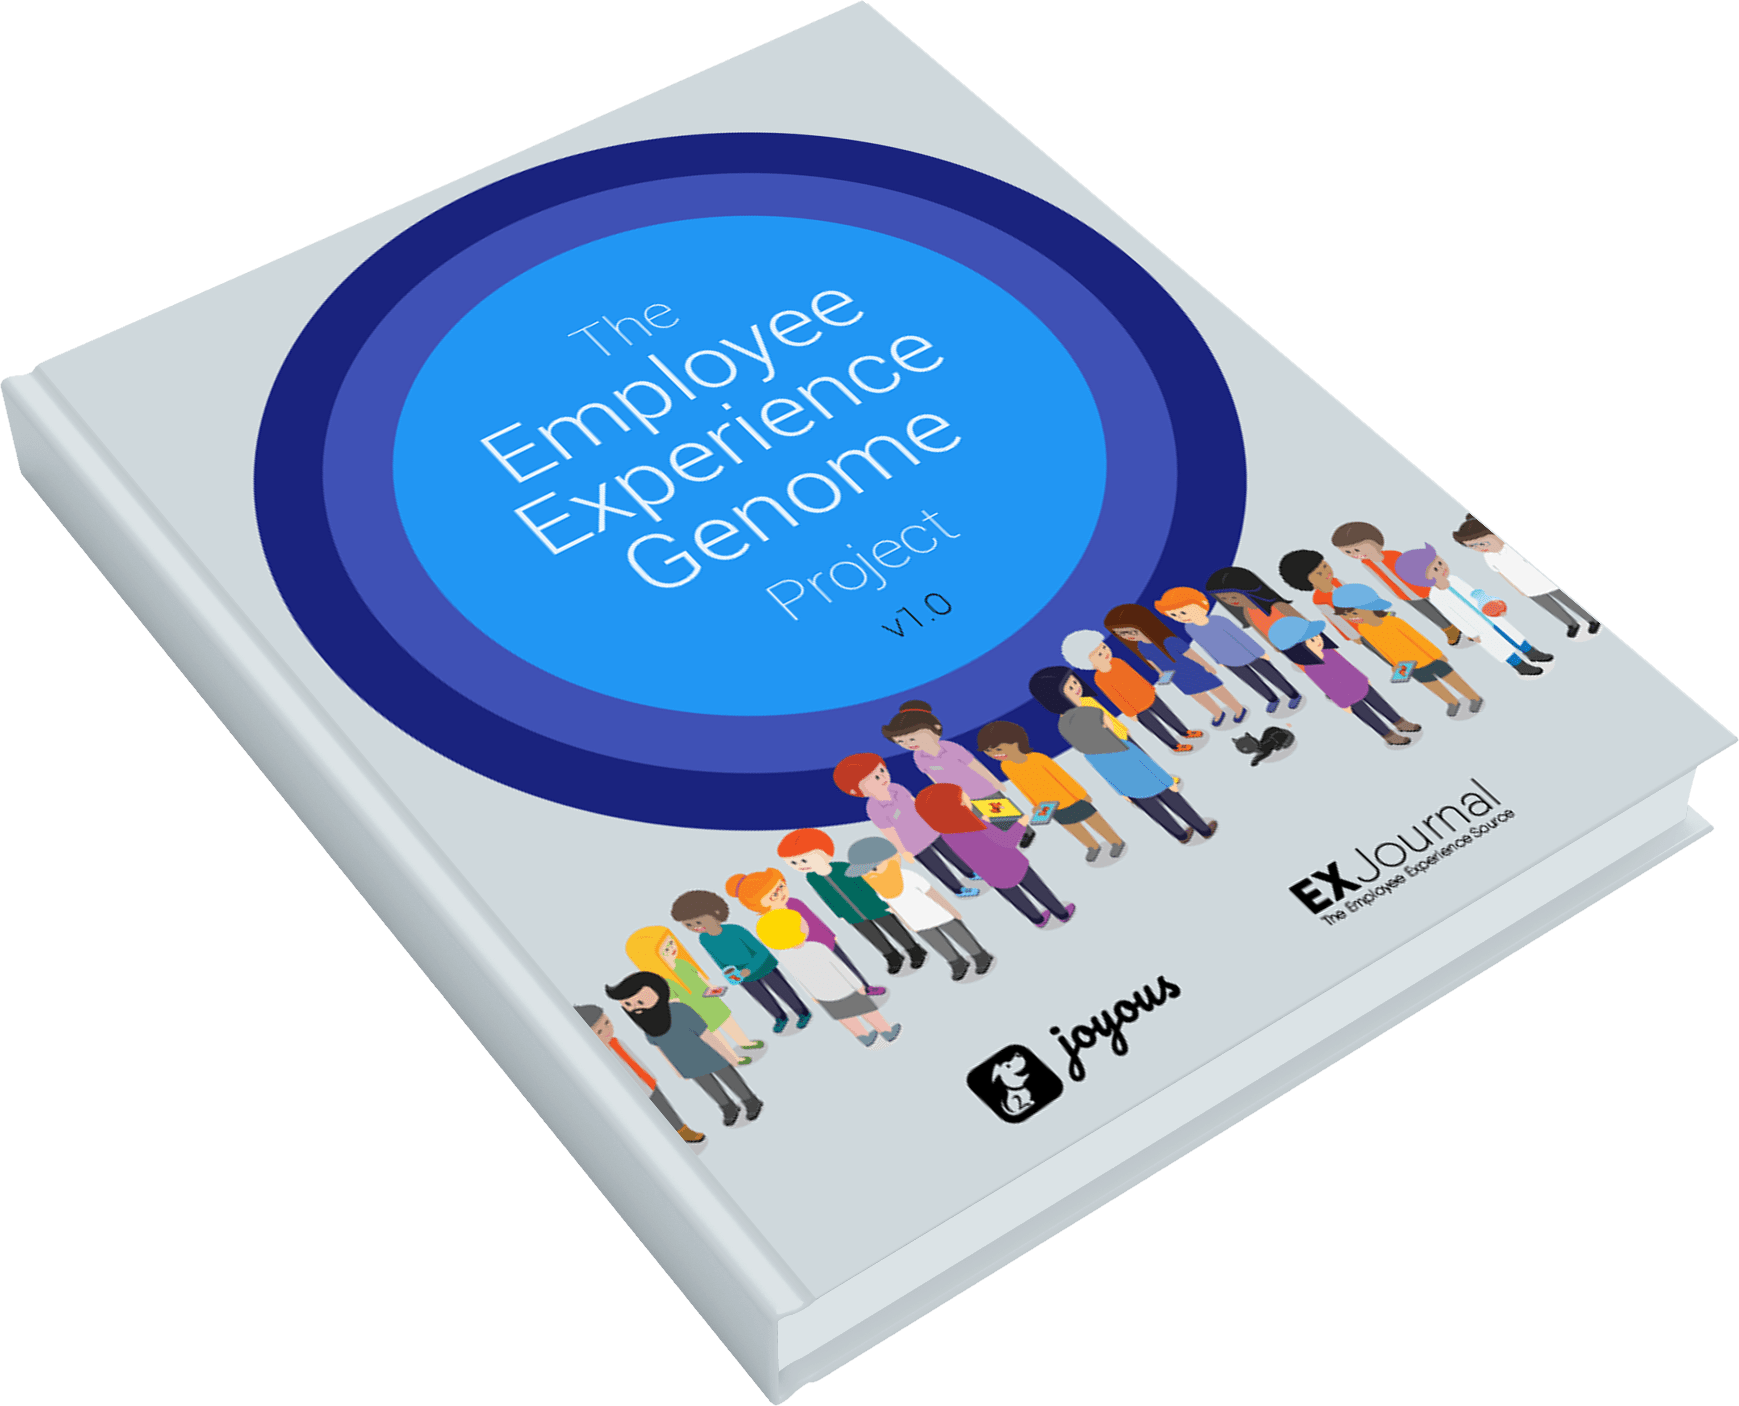 The Employee Experience Genome Project